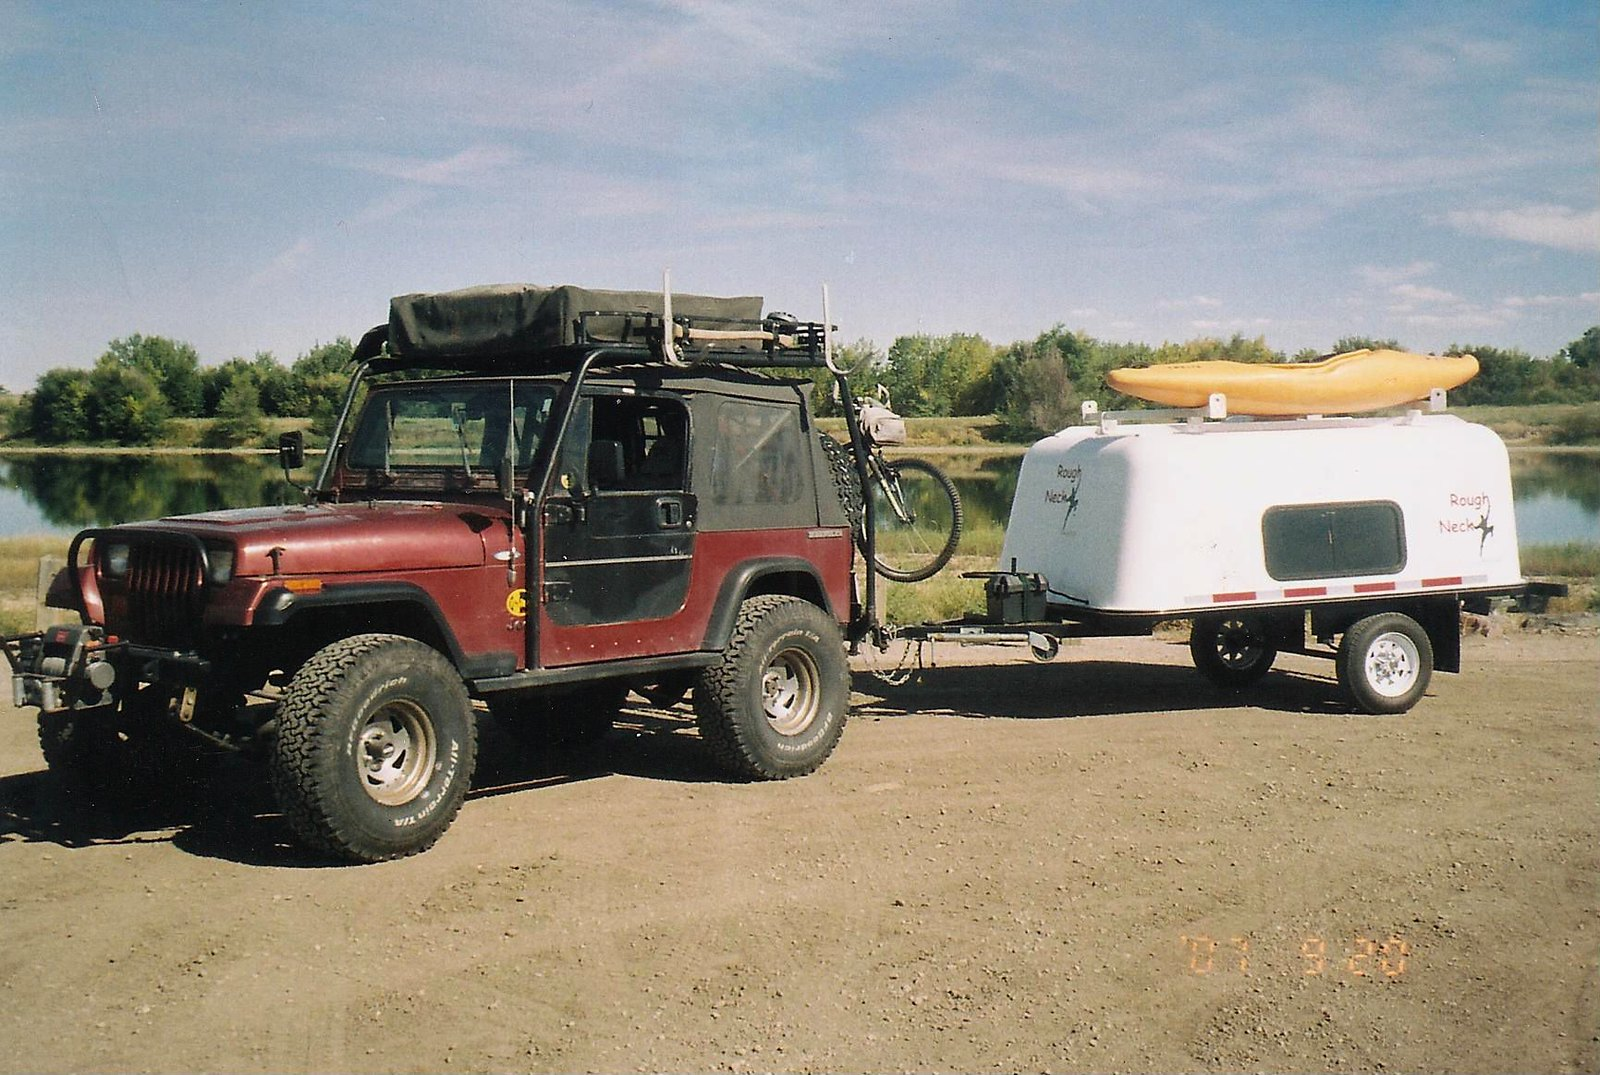 Rough Neck Camping Trailer